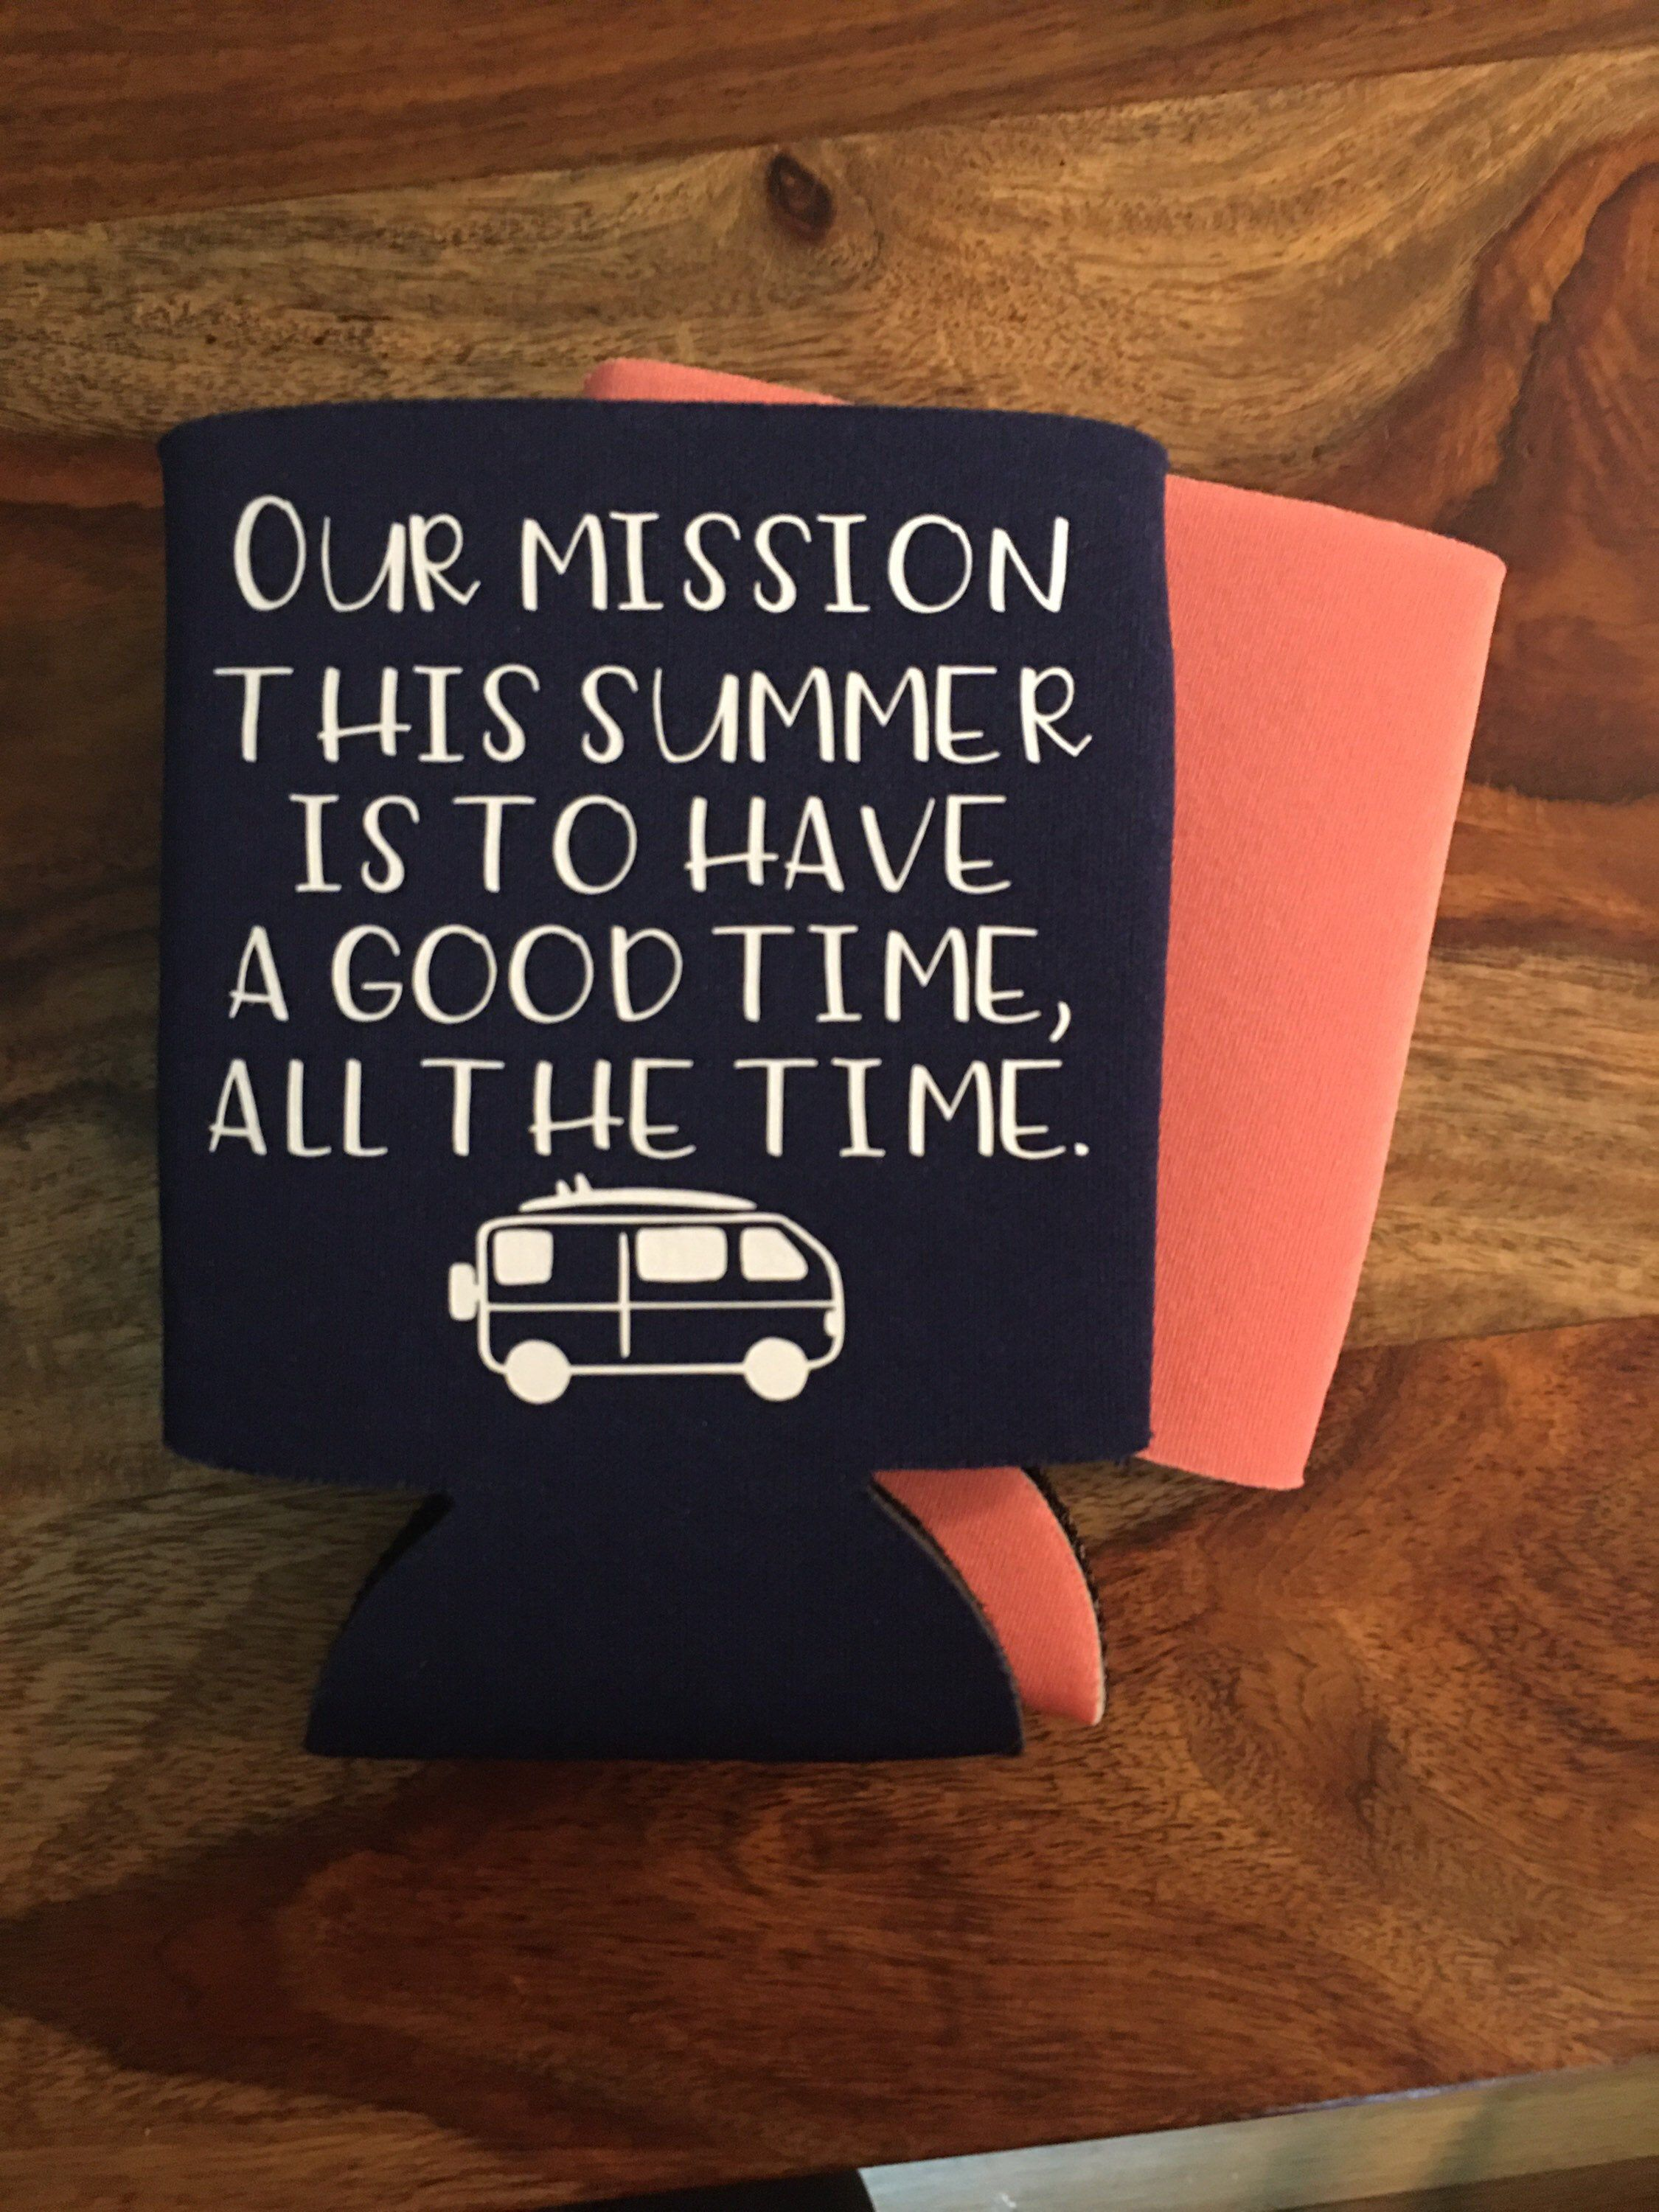 Our Mission This Summer Can Cooler Obx Can Cooler Outer Etsy Obx Outer Banks Bank Gifts